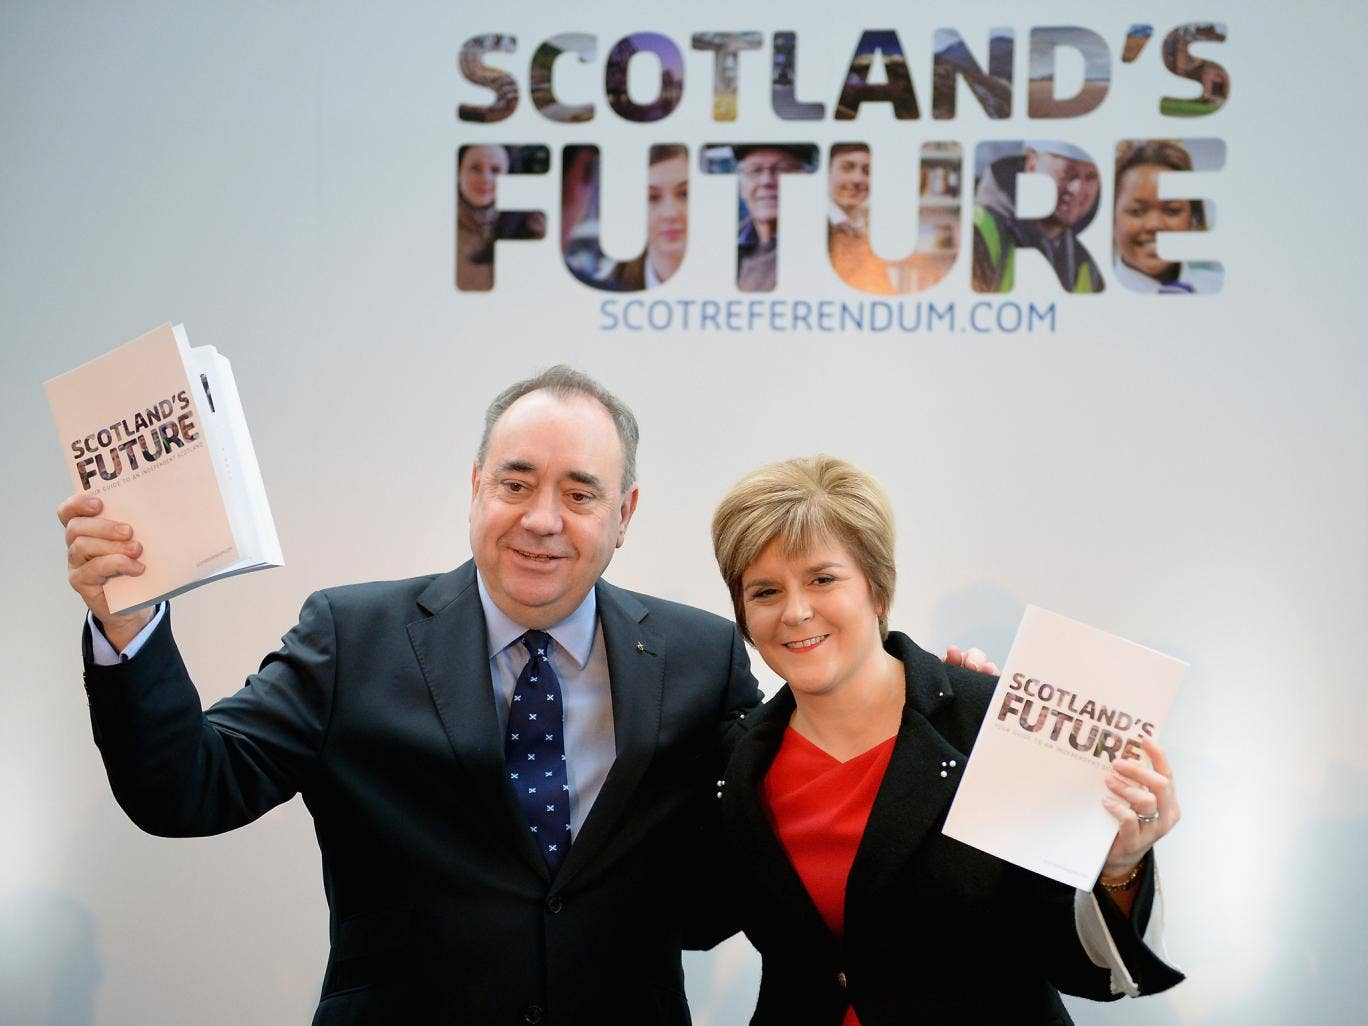 Alex Salmond  and Deputy First Minister Nicola Sturgeon present the White Paper for Scottish independence in November 2013 in Glasgow